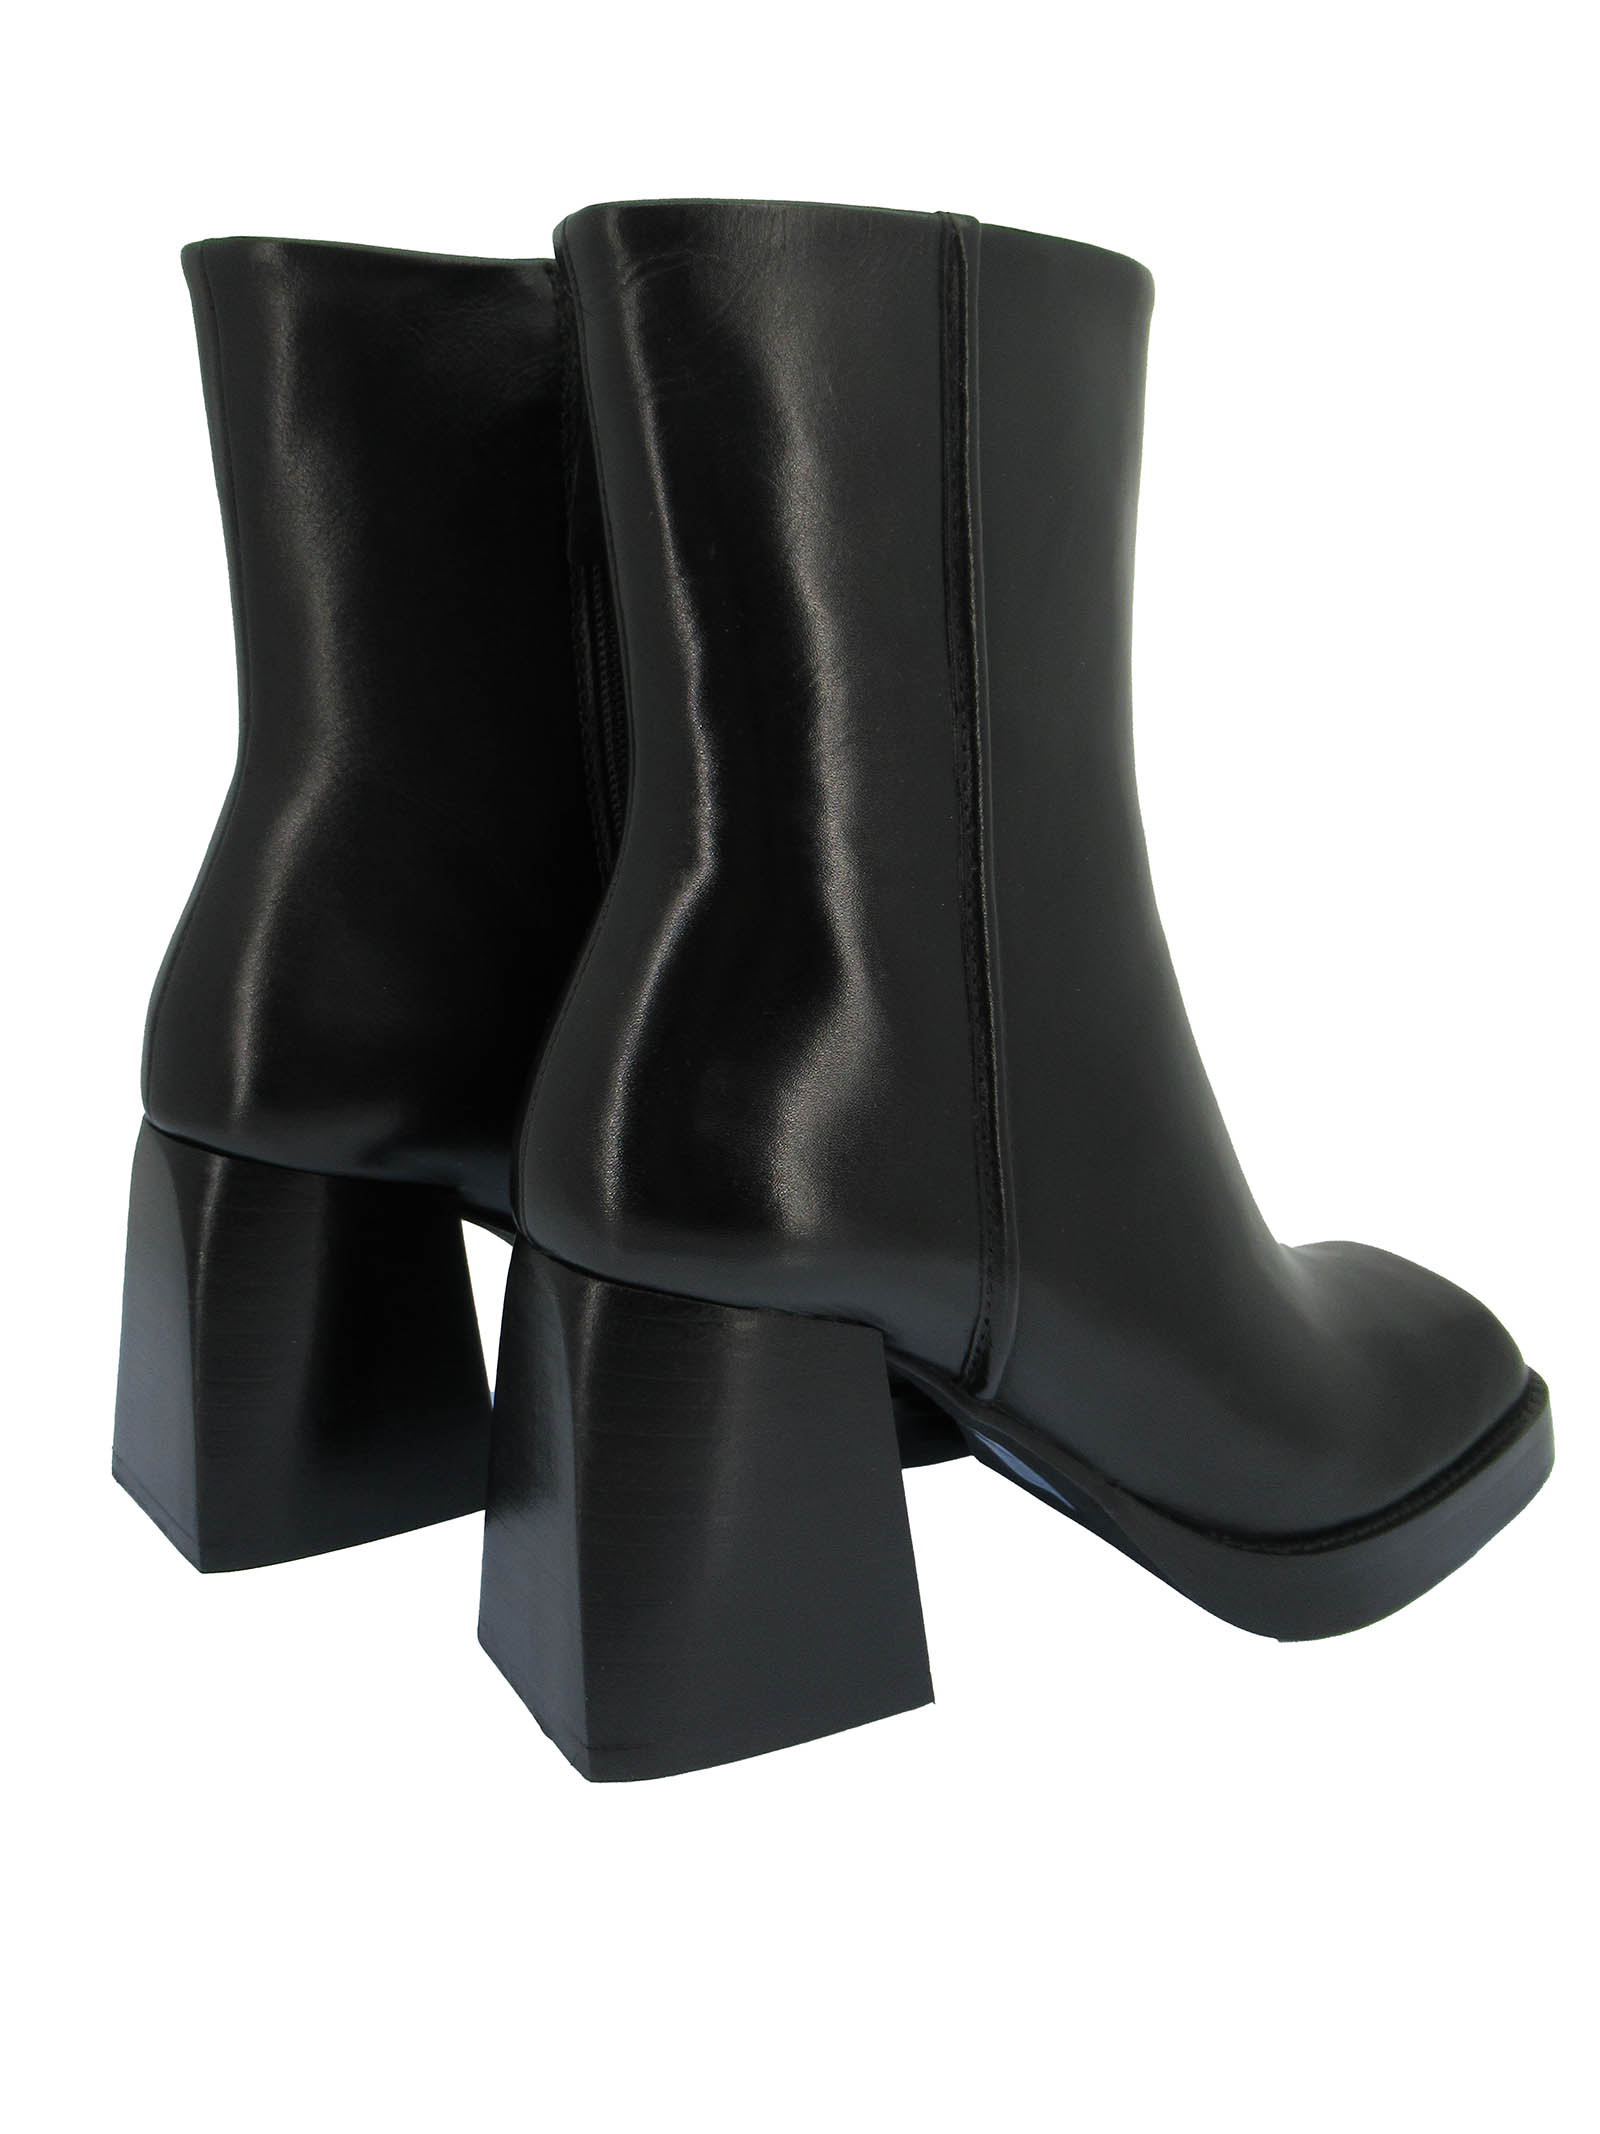 Women's Shoes Ankle boots in Black Leather Square Toe High Heel Non-slip Rubber Sole Bruno Premi   Ankle Boots   BC5101X001